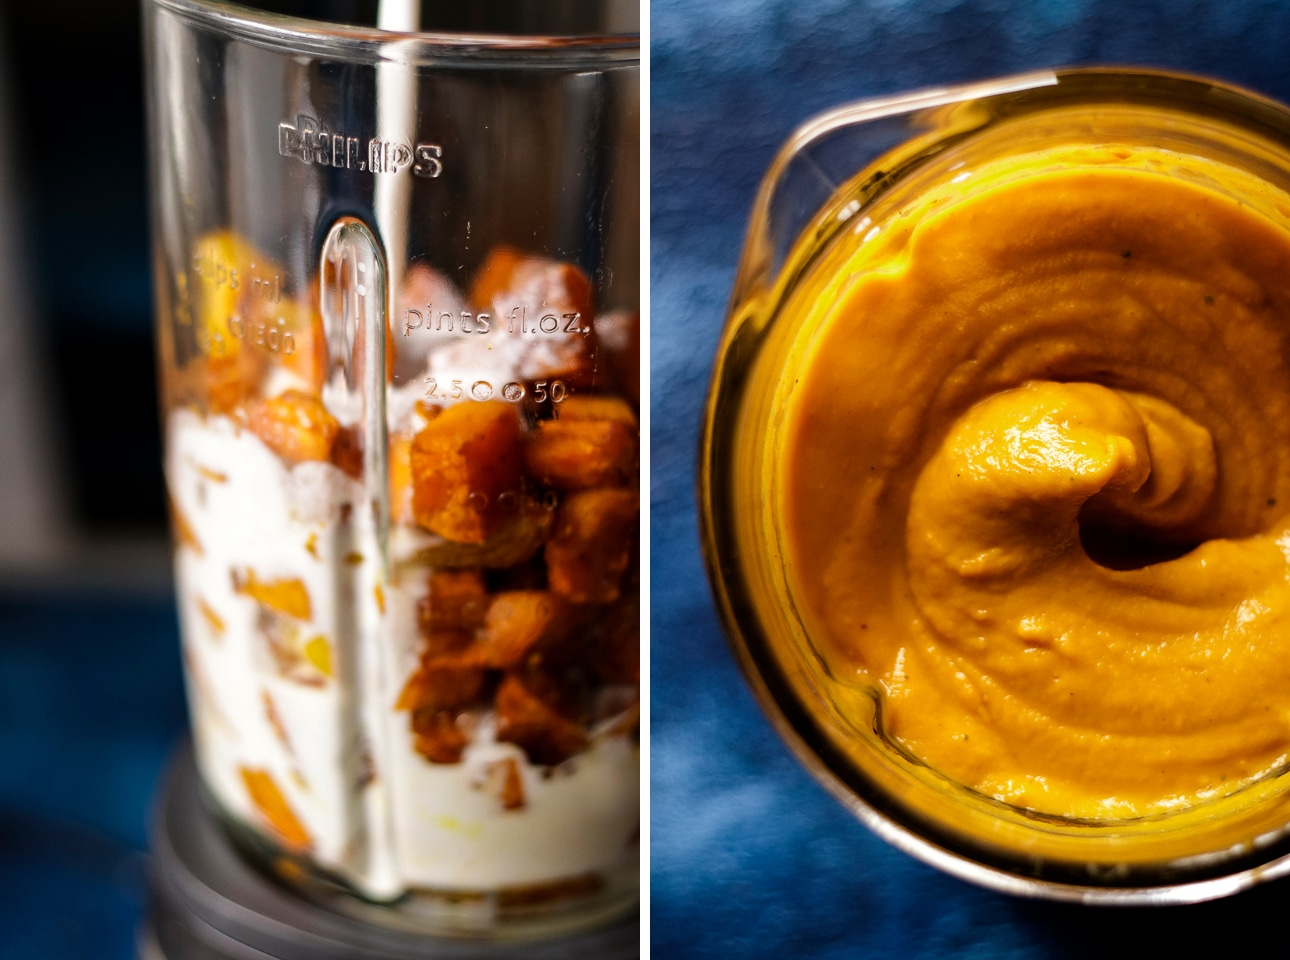 Roasted Sweet Potatoes with Coconut Milk in a Blender Before and After Blending